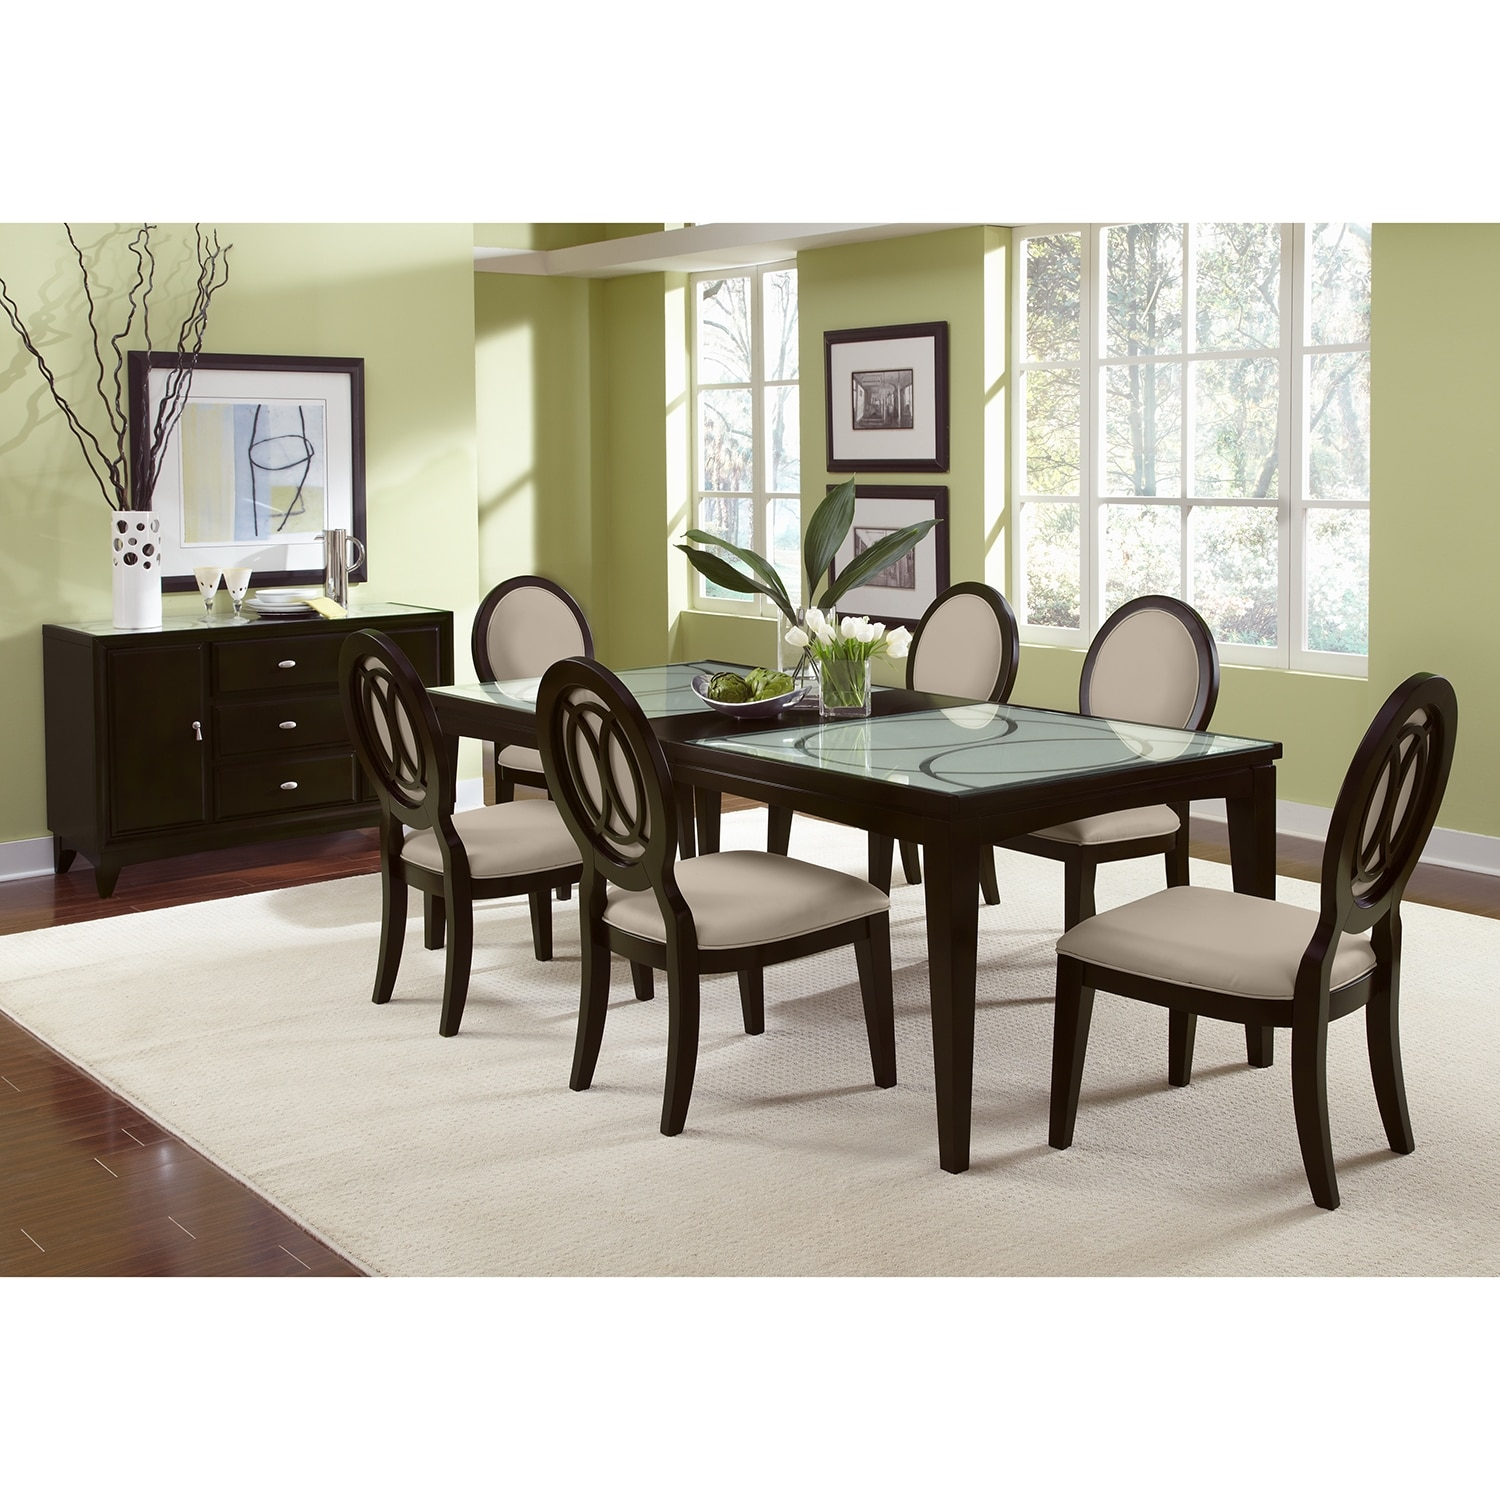 7ddd9d1a42 Cosmo Table and 6 Chairs - Merlot | Value City Furniture and Mattresses